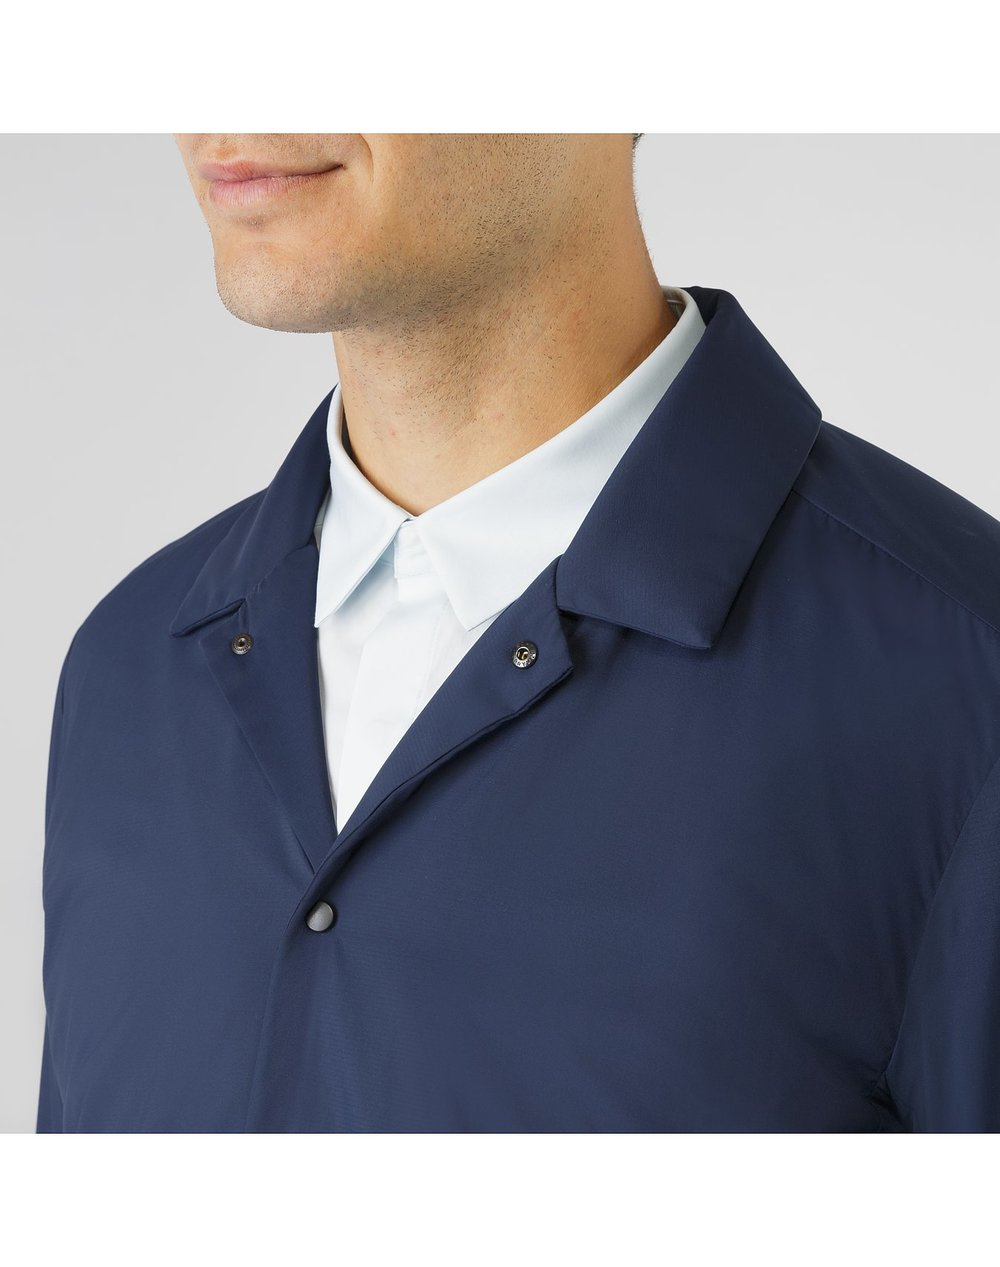 Quoin-Jacket-Navy-Blue-Open-Collar.jpg